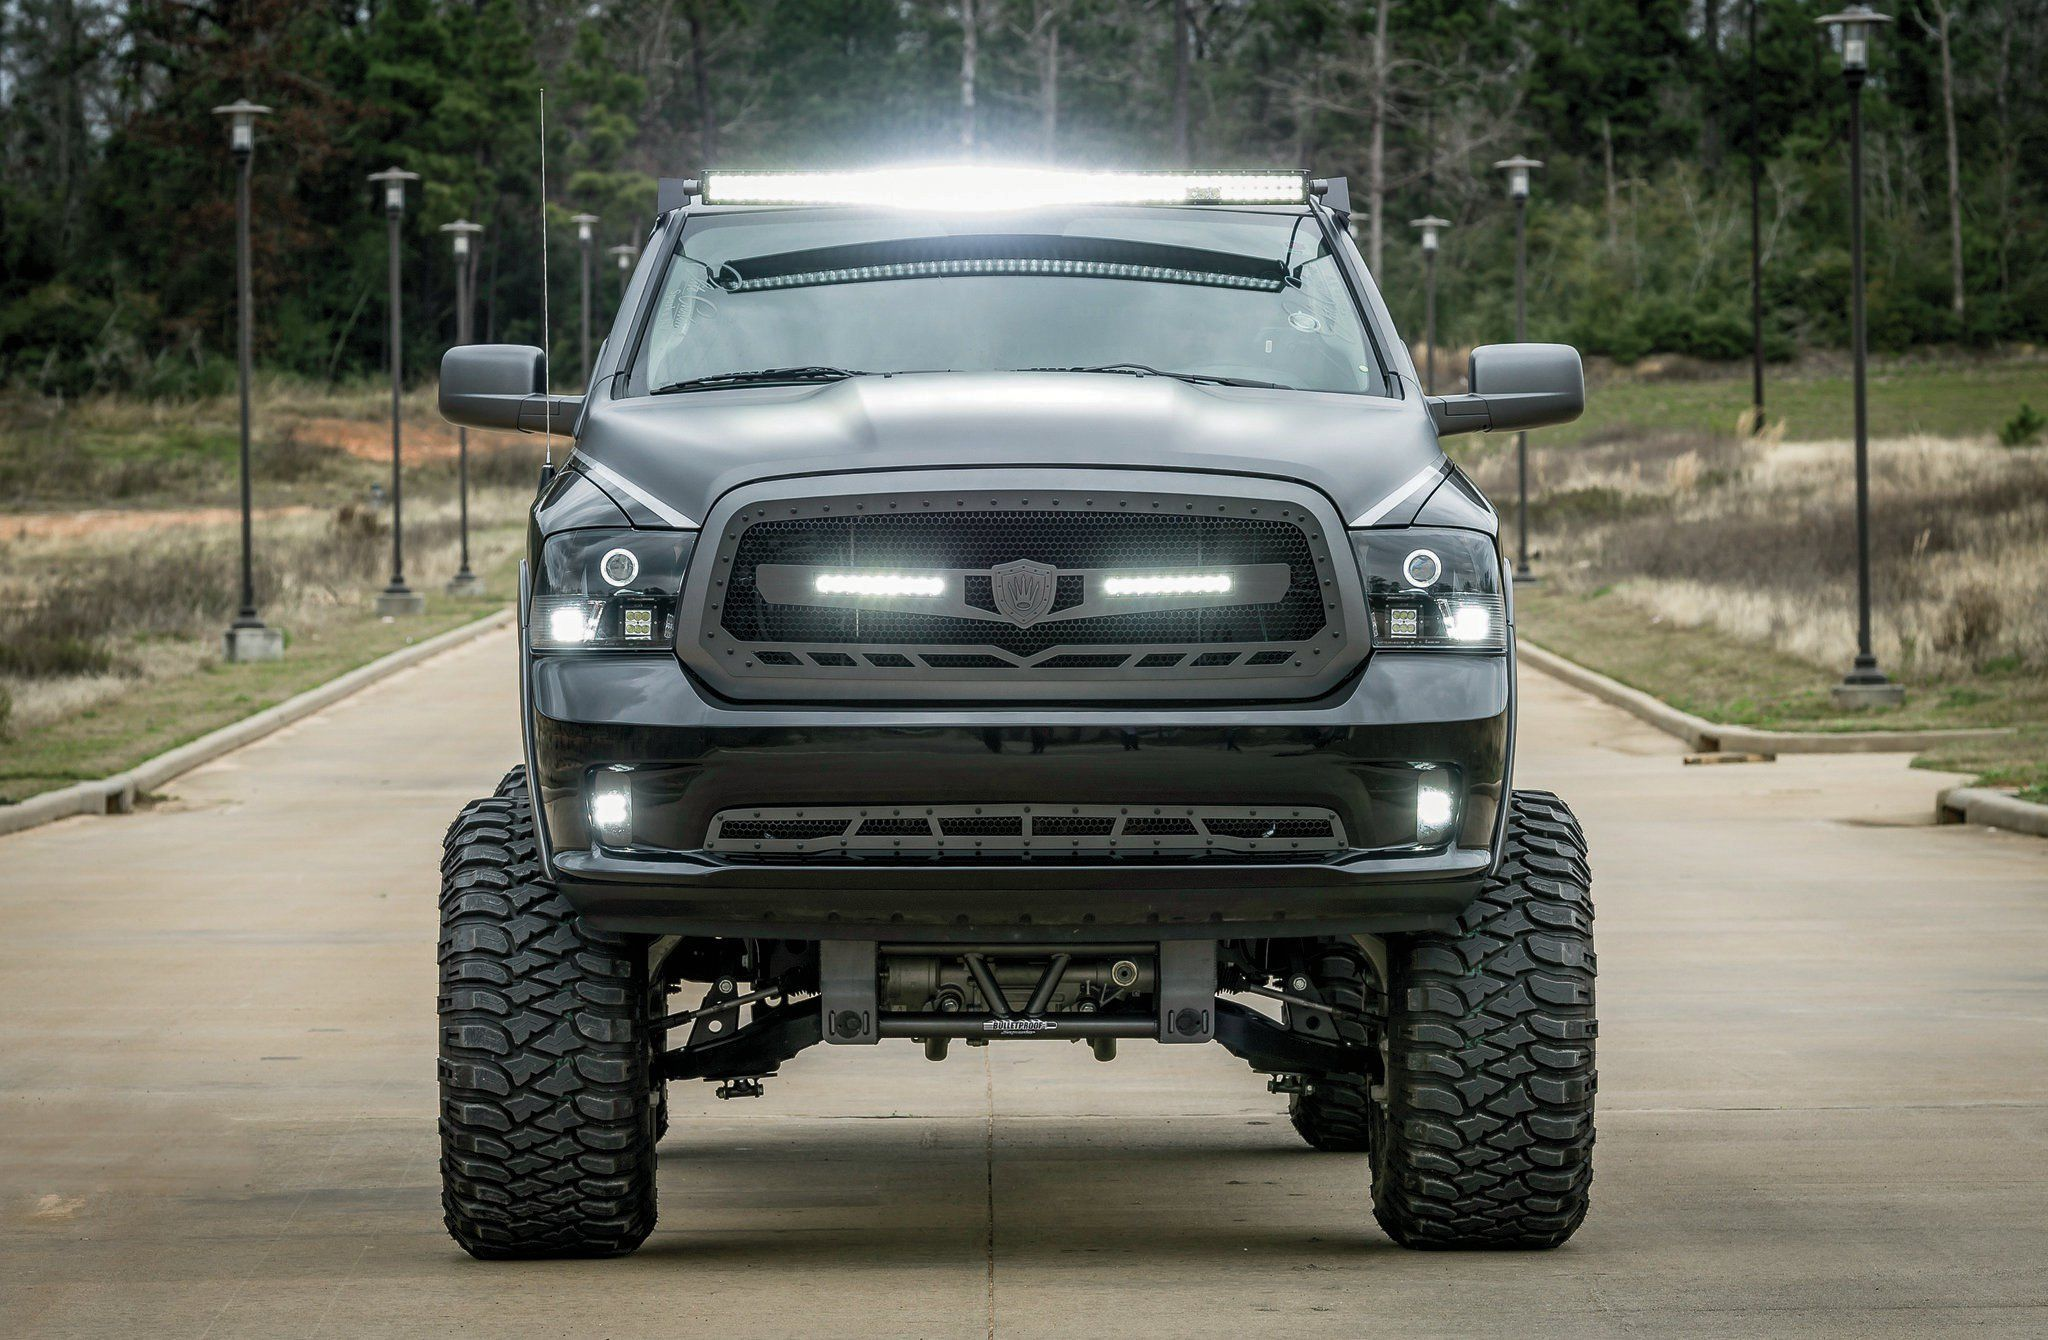 Dodge ram srt 10 black car photography pinterest dodge ram srt 10 ram srt 10 and dodge rams